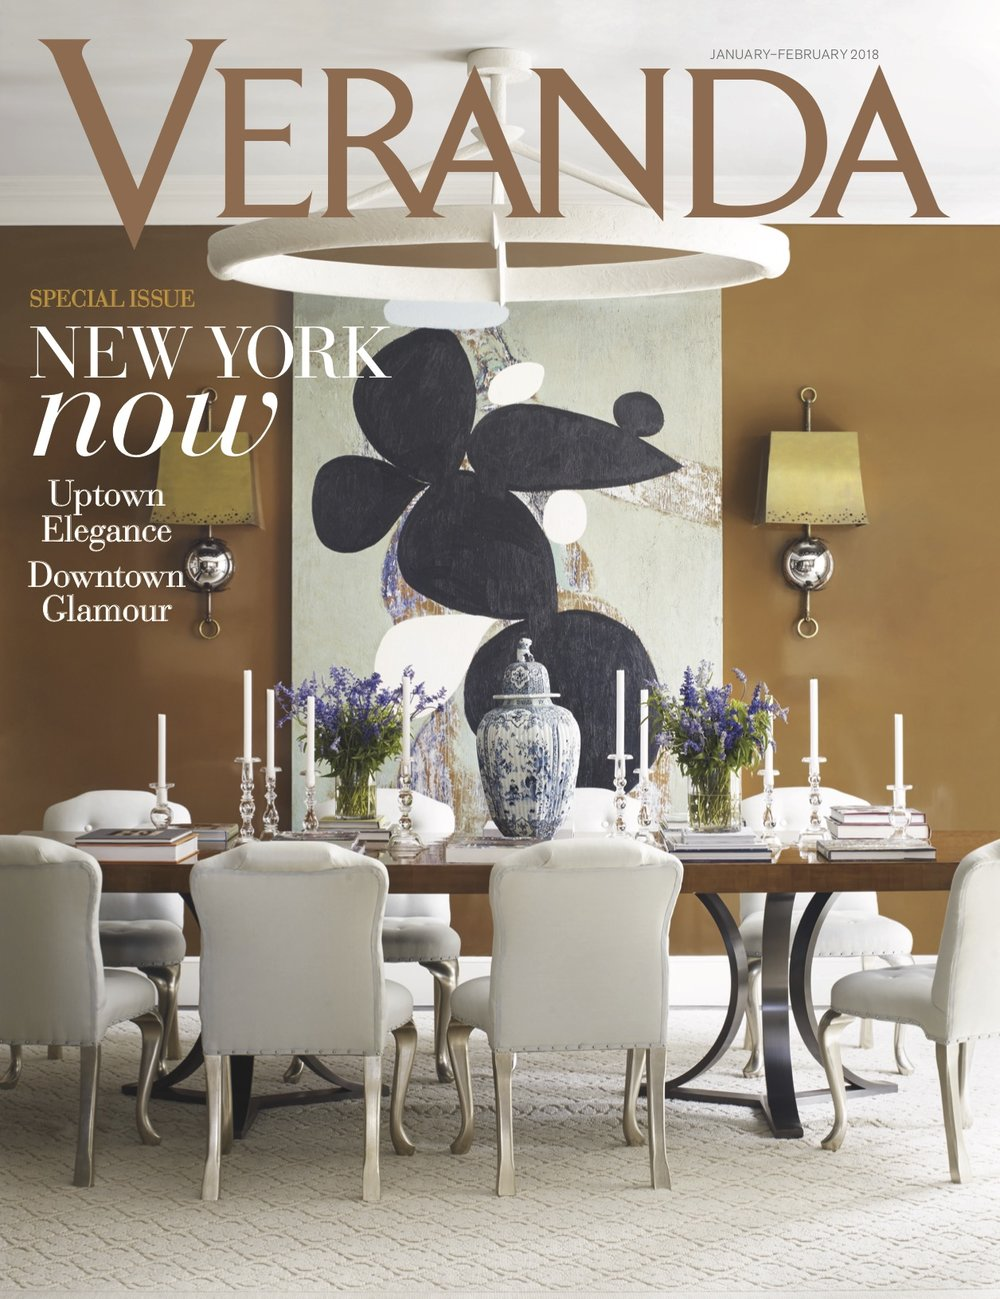 Denise Fasnanello Flowers - Feature by Veranda - January 2018 - Cover.jpg